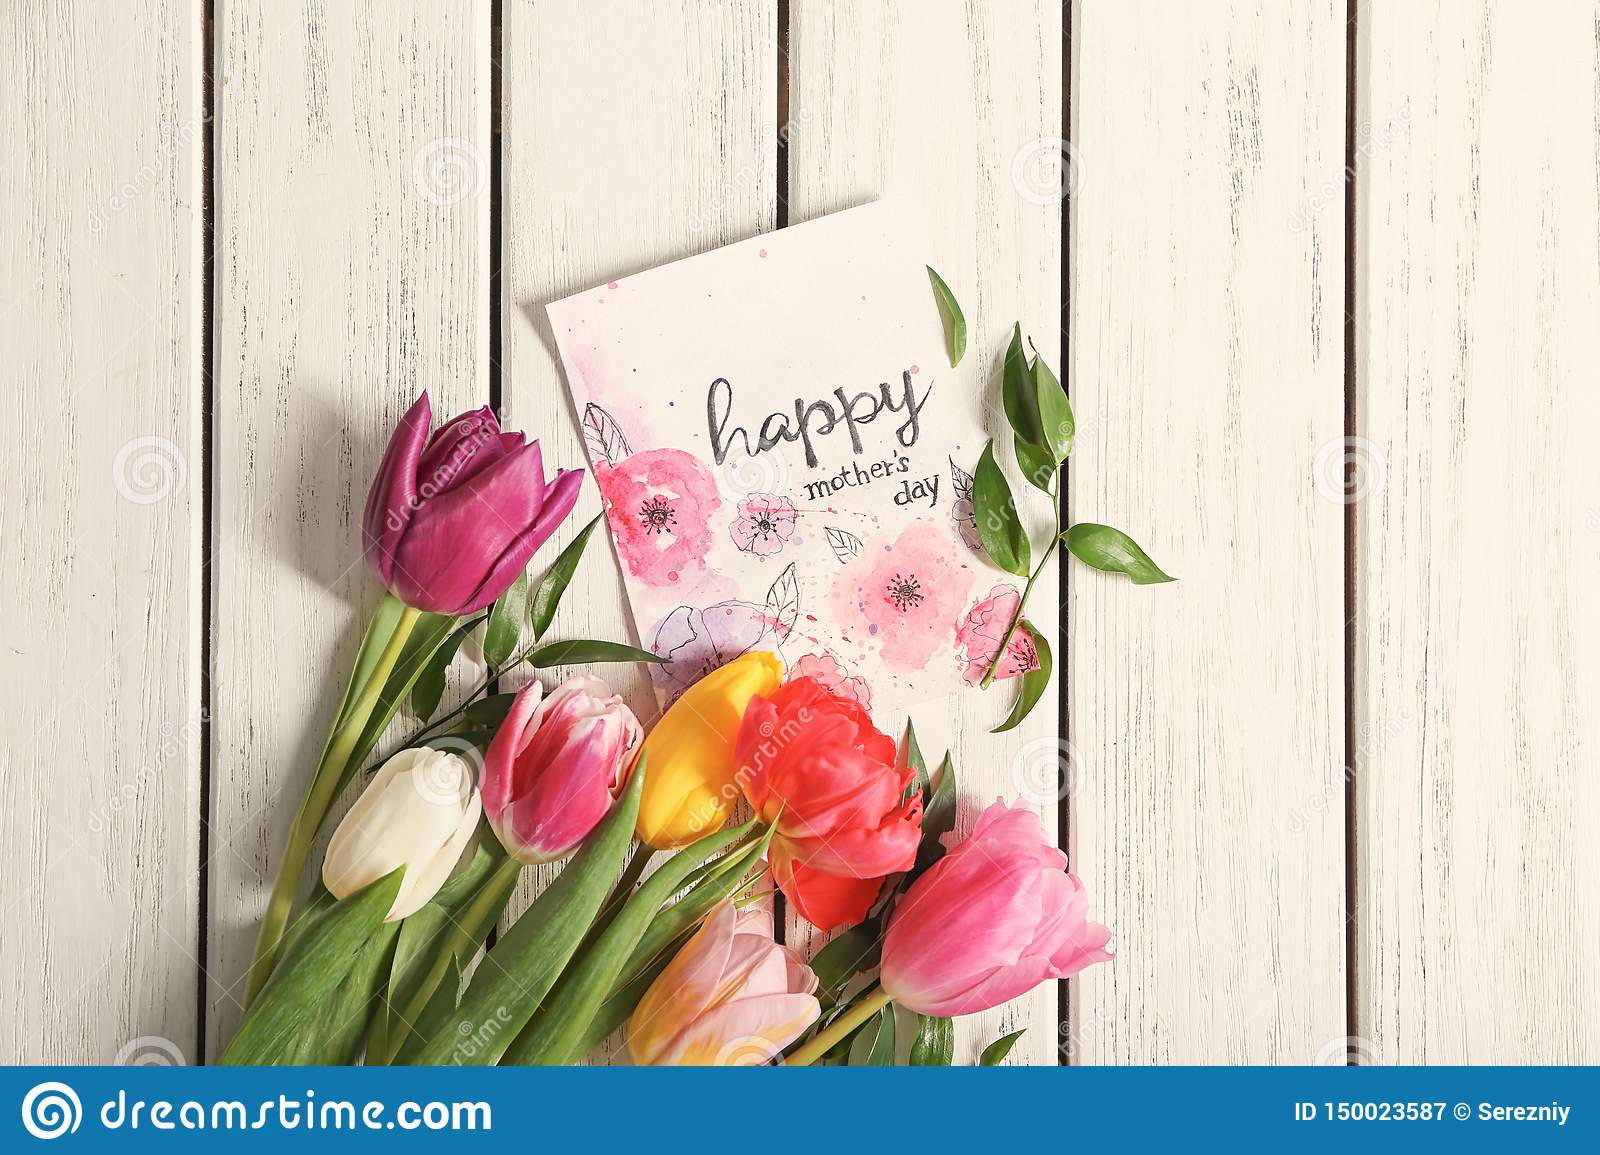 card with words happy mother s day and flowers on wooden